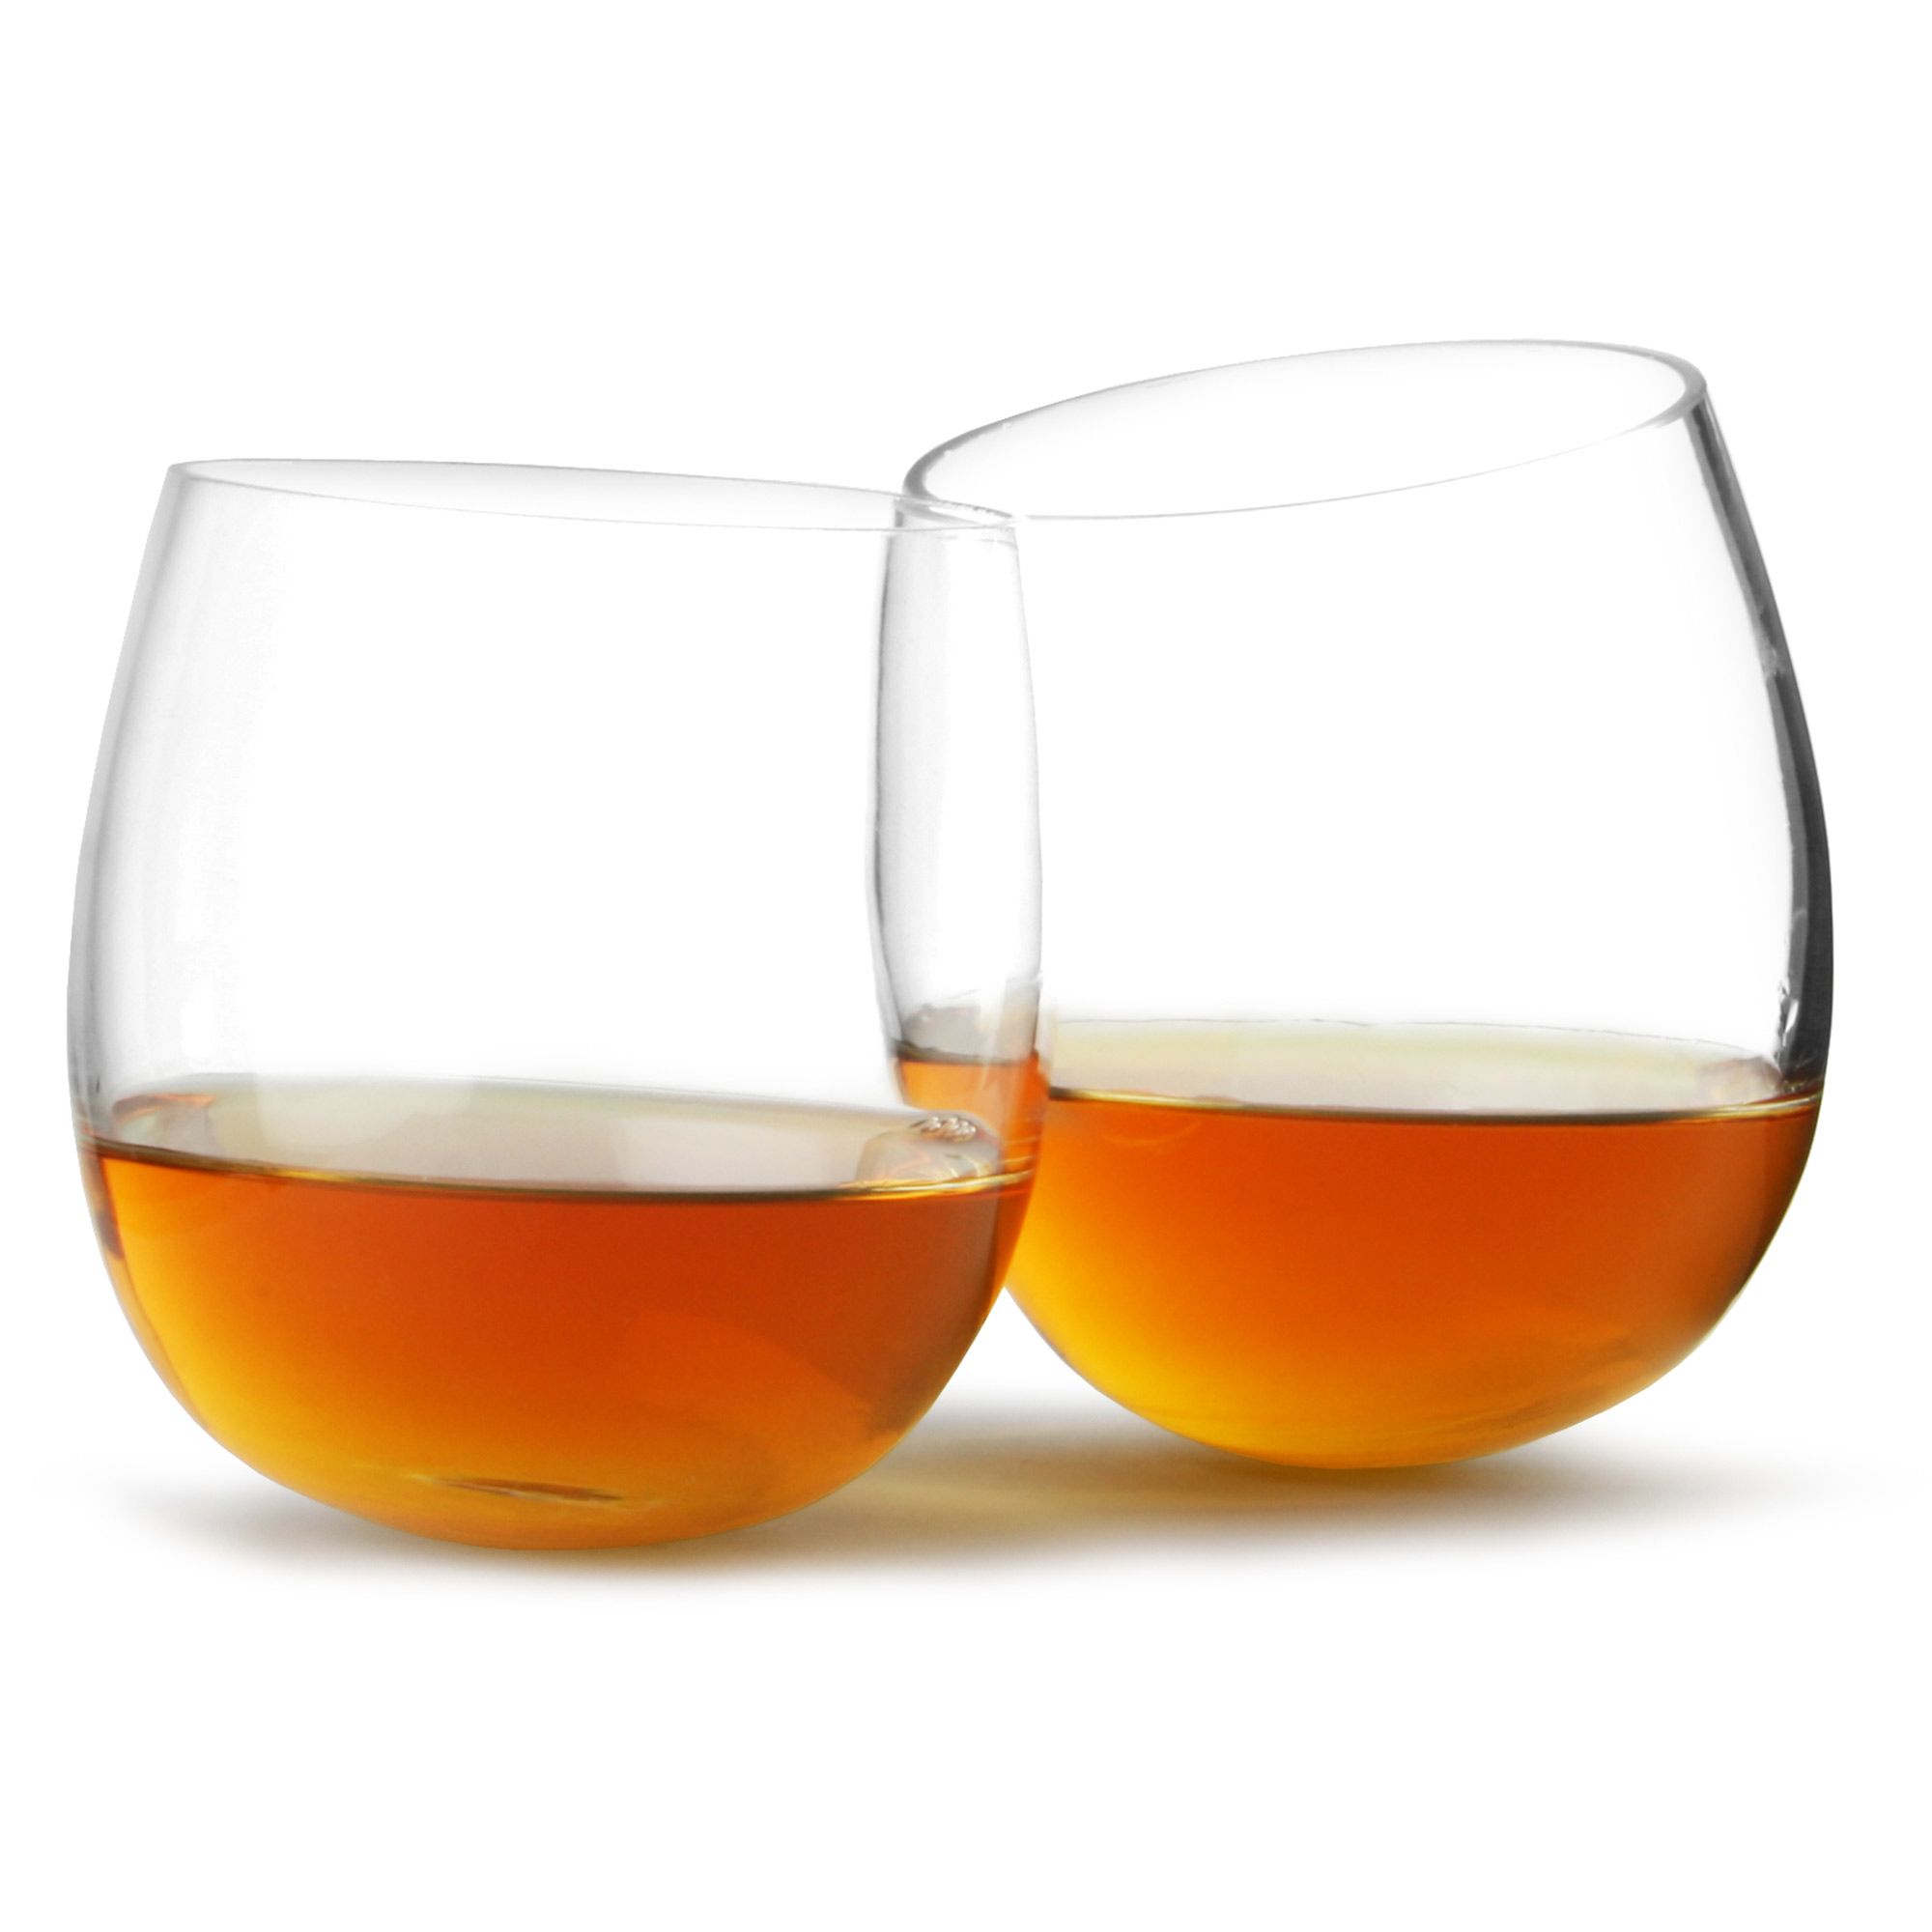 whisky rocker glasses 300ml novelty glasses. Black Bedroom Furniture Sets. Home Design Ideas